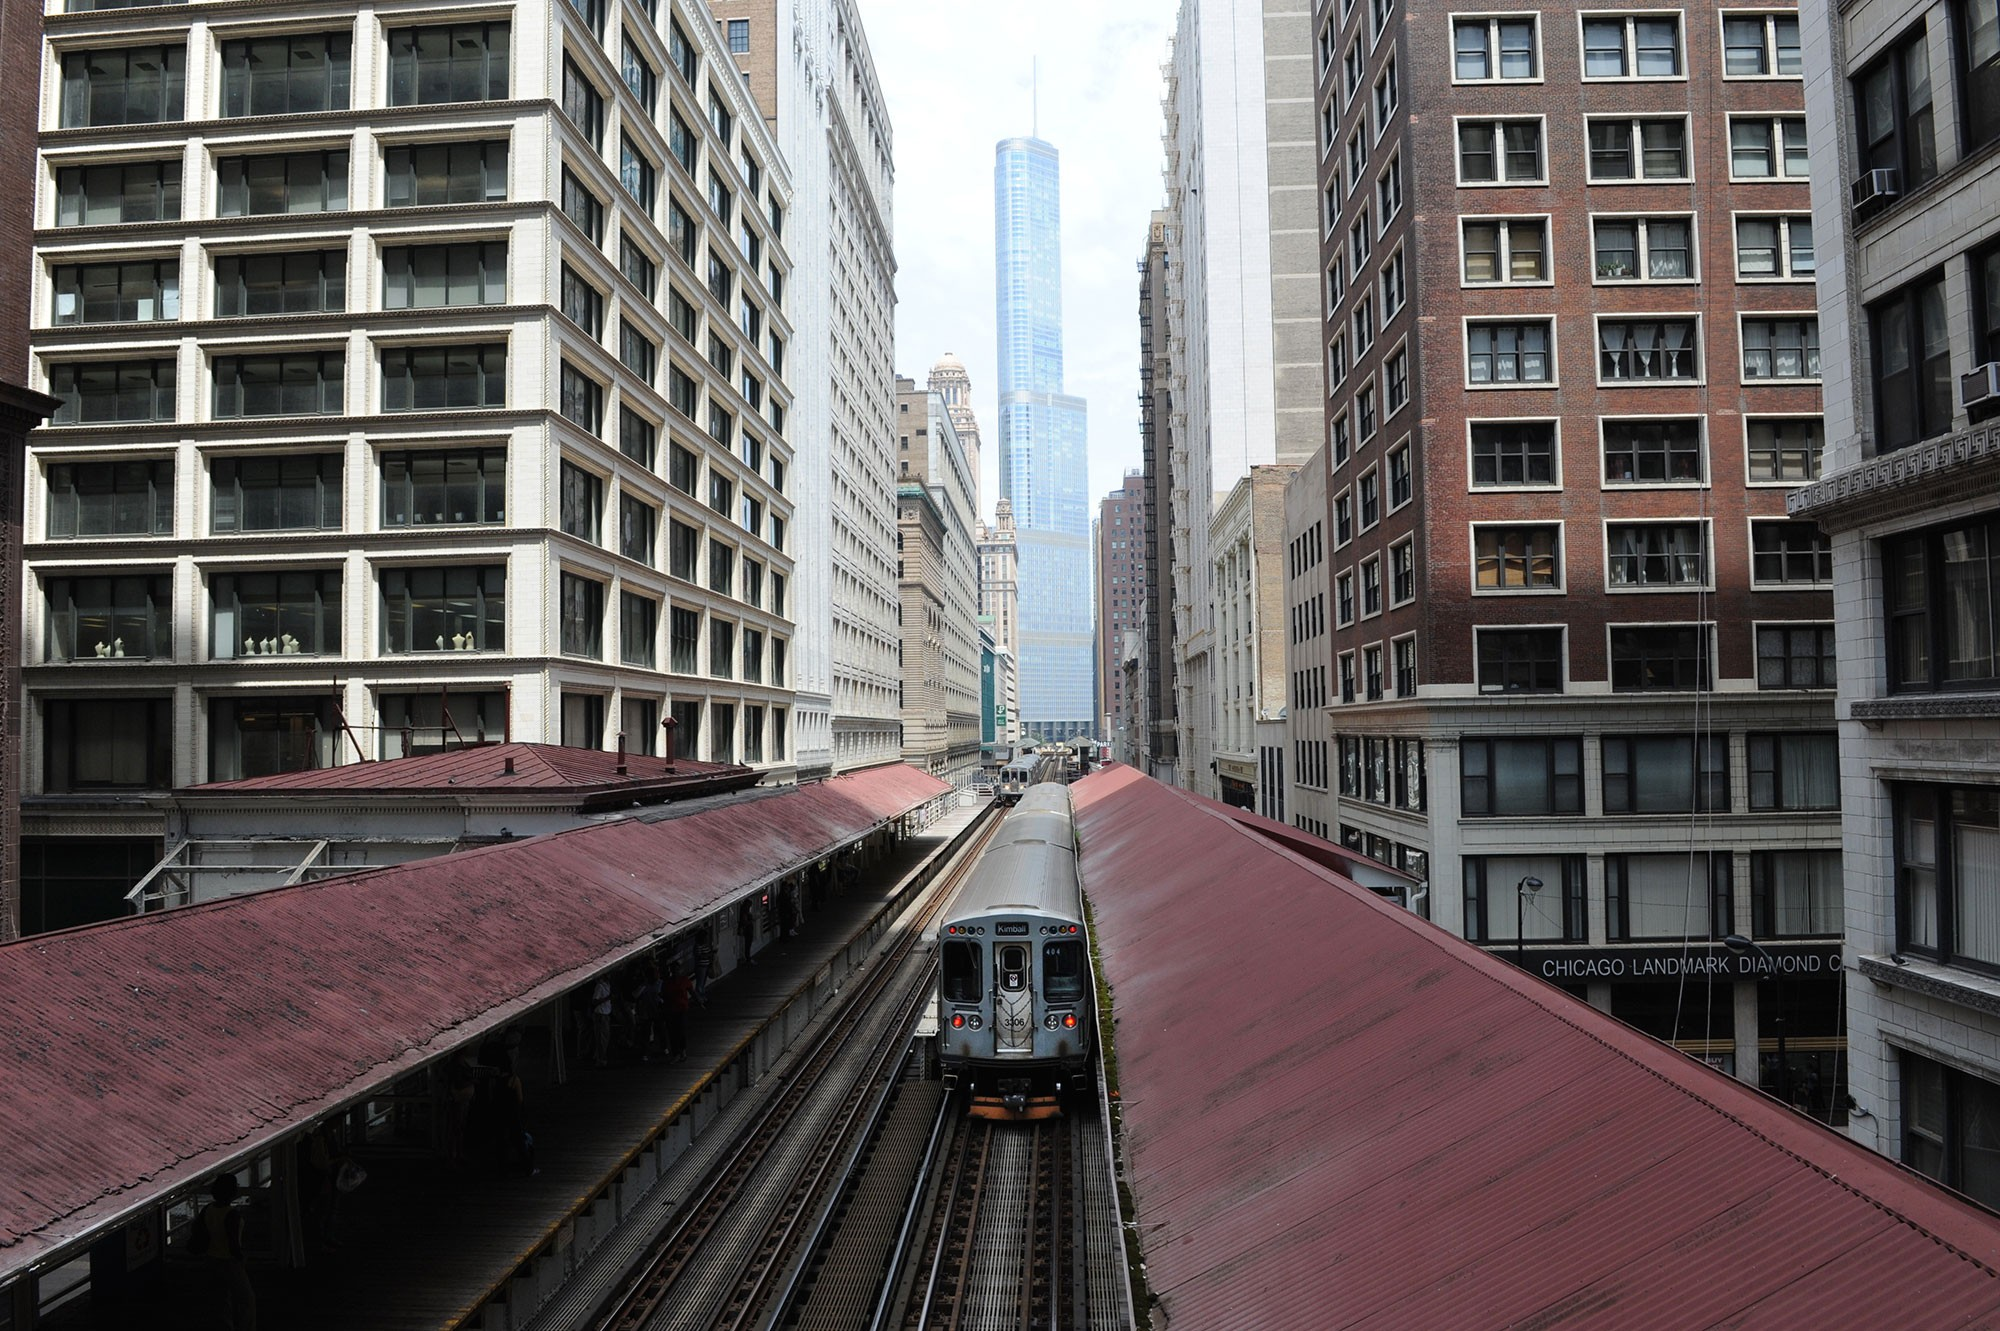 Explore Chicagos Amazing Architecture From The Unique Perspective Of Elevated Trains And Station Platforms While Learning History Famous L